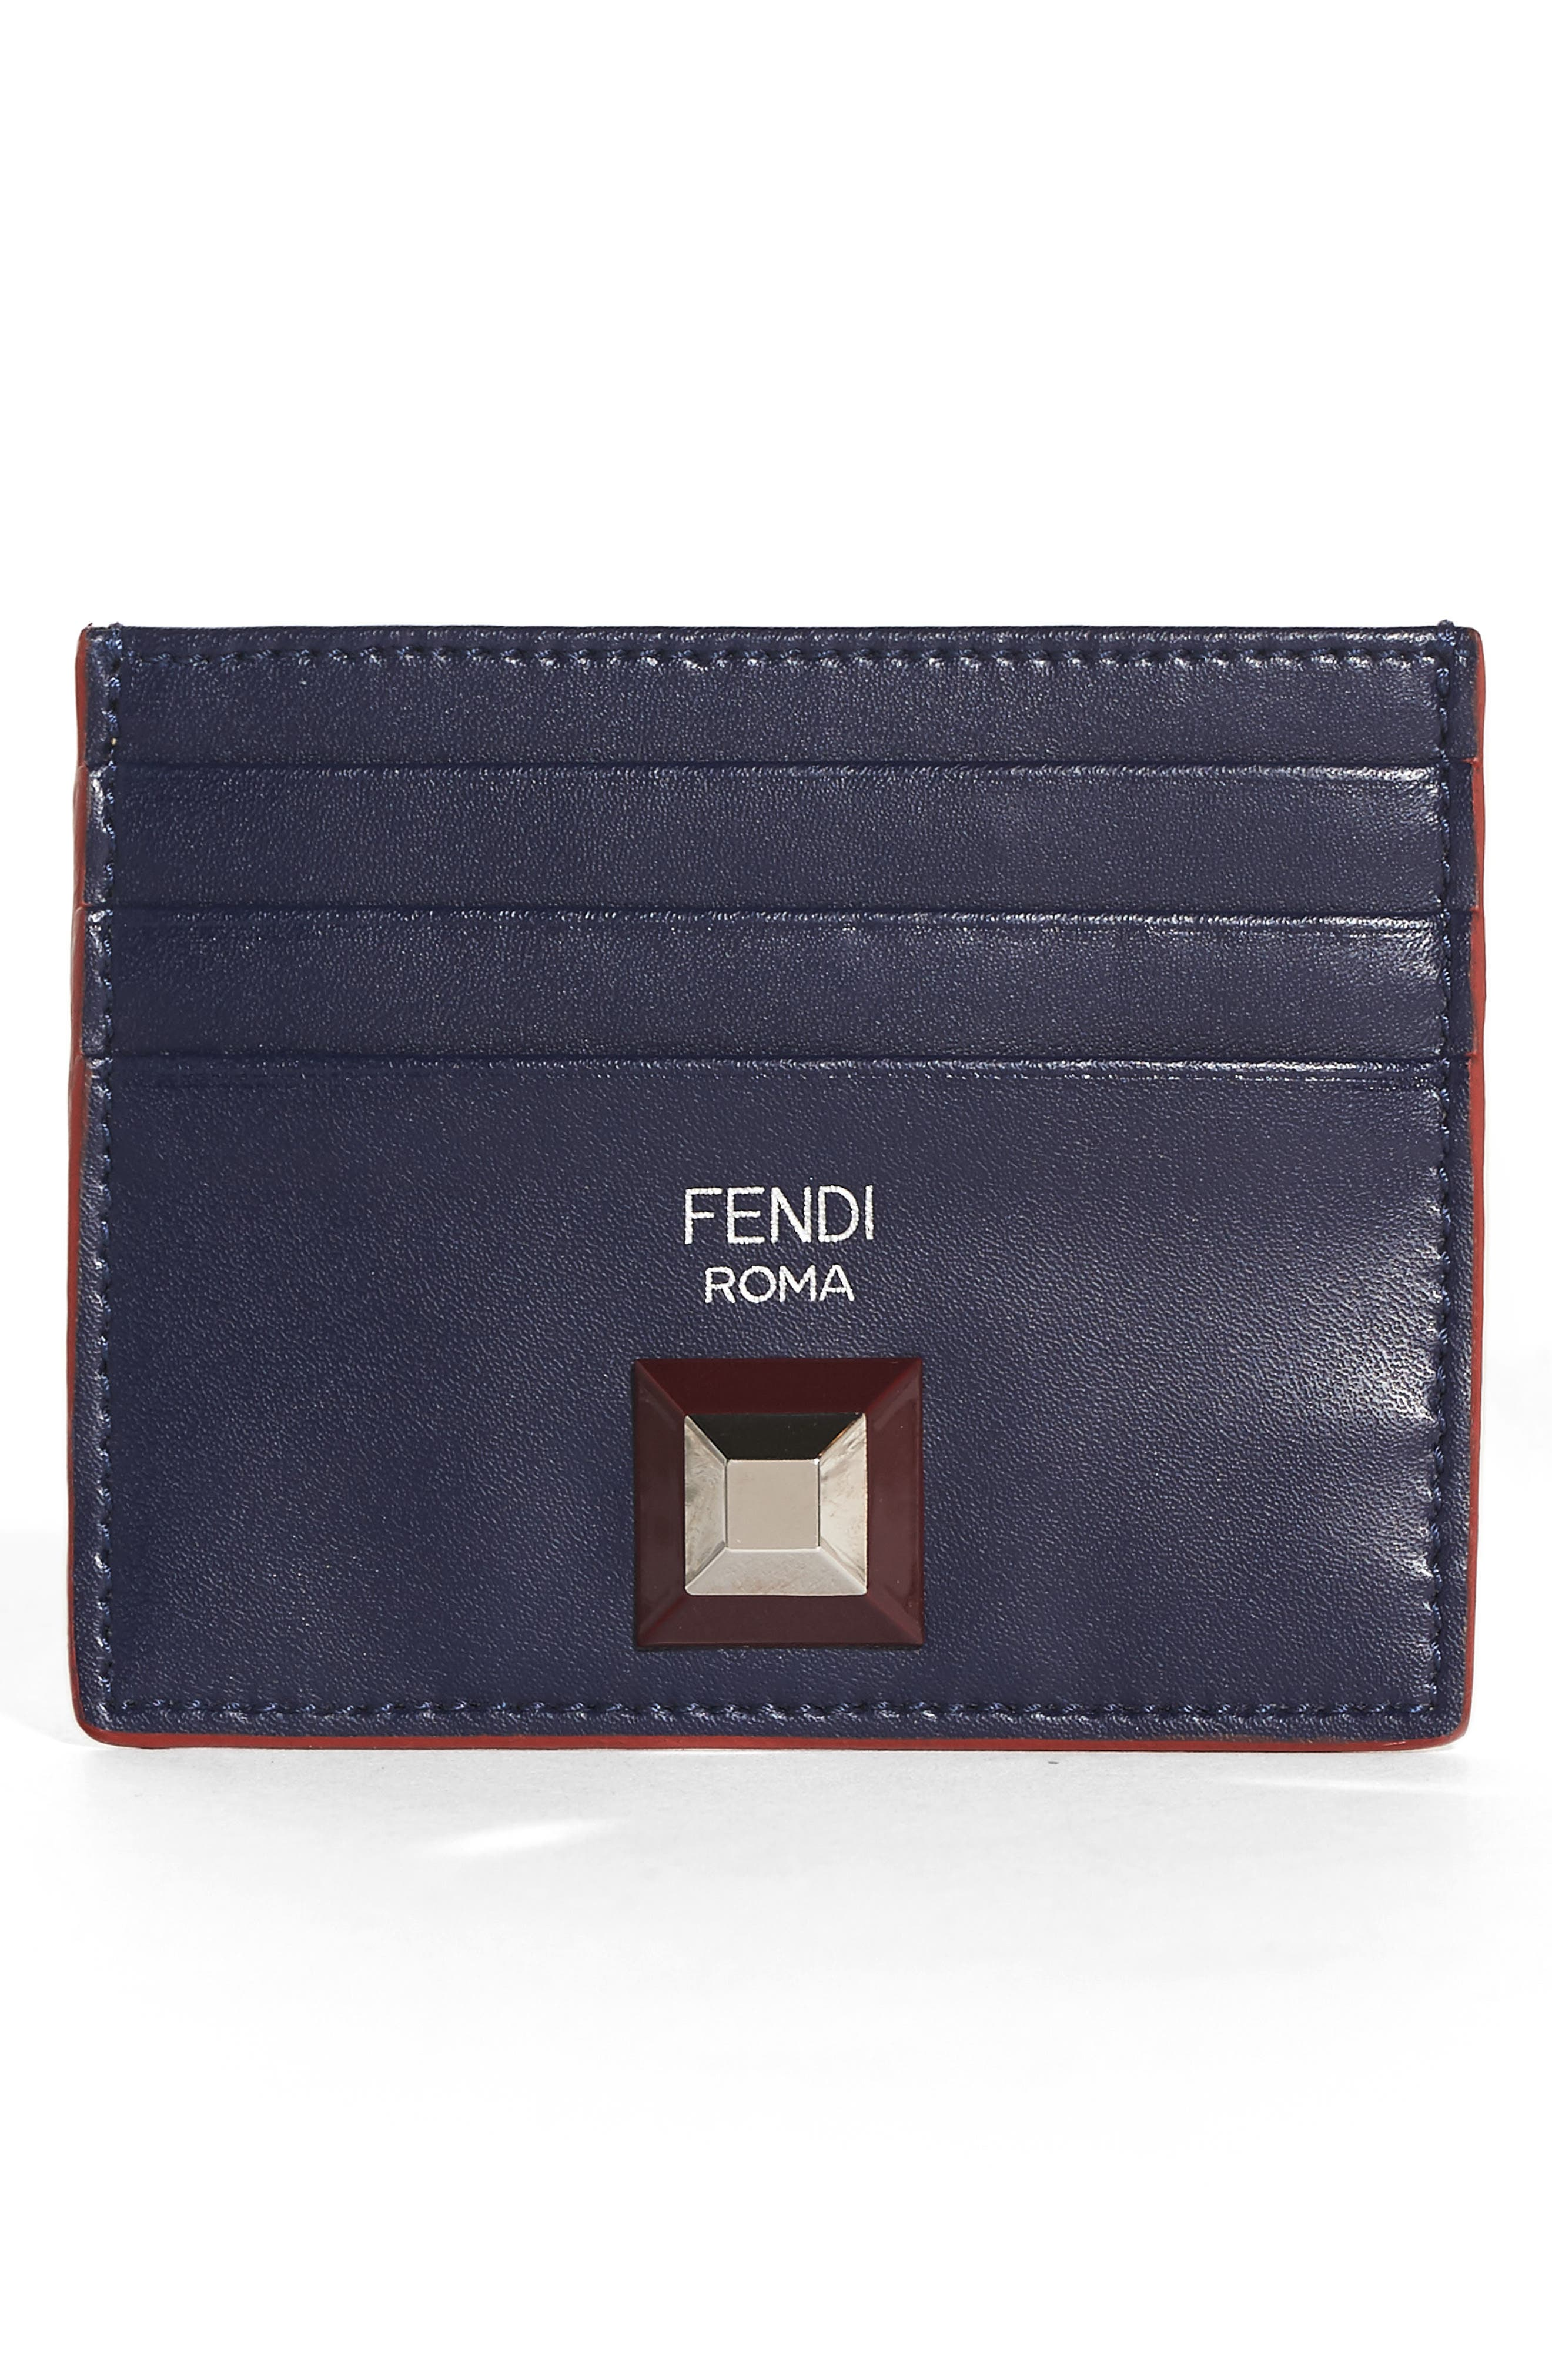 Fendi Rainbow Stud Leather Card Case